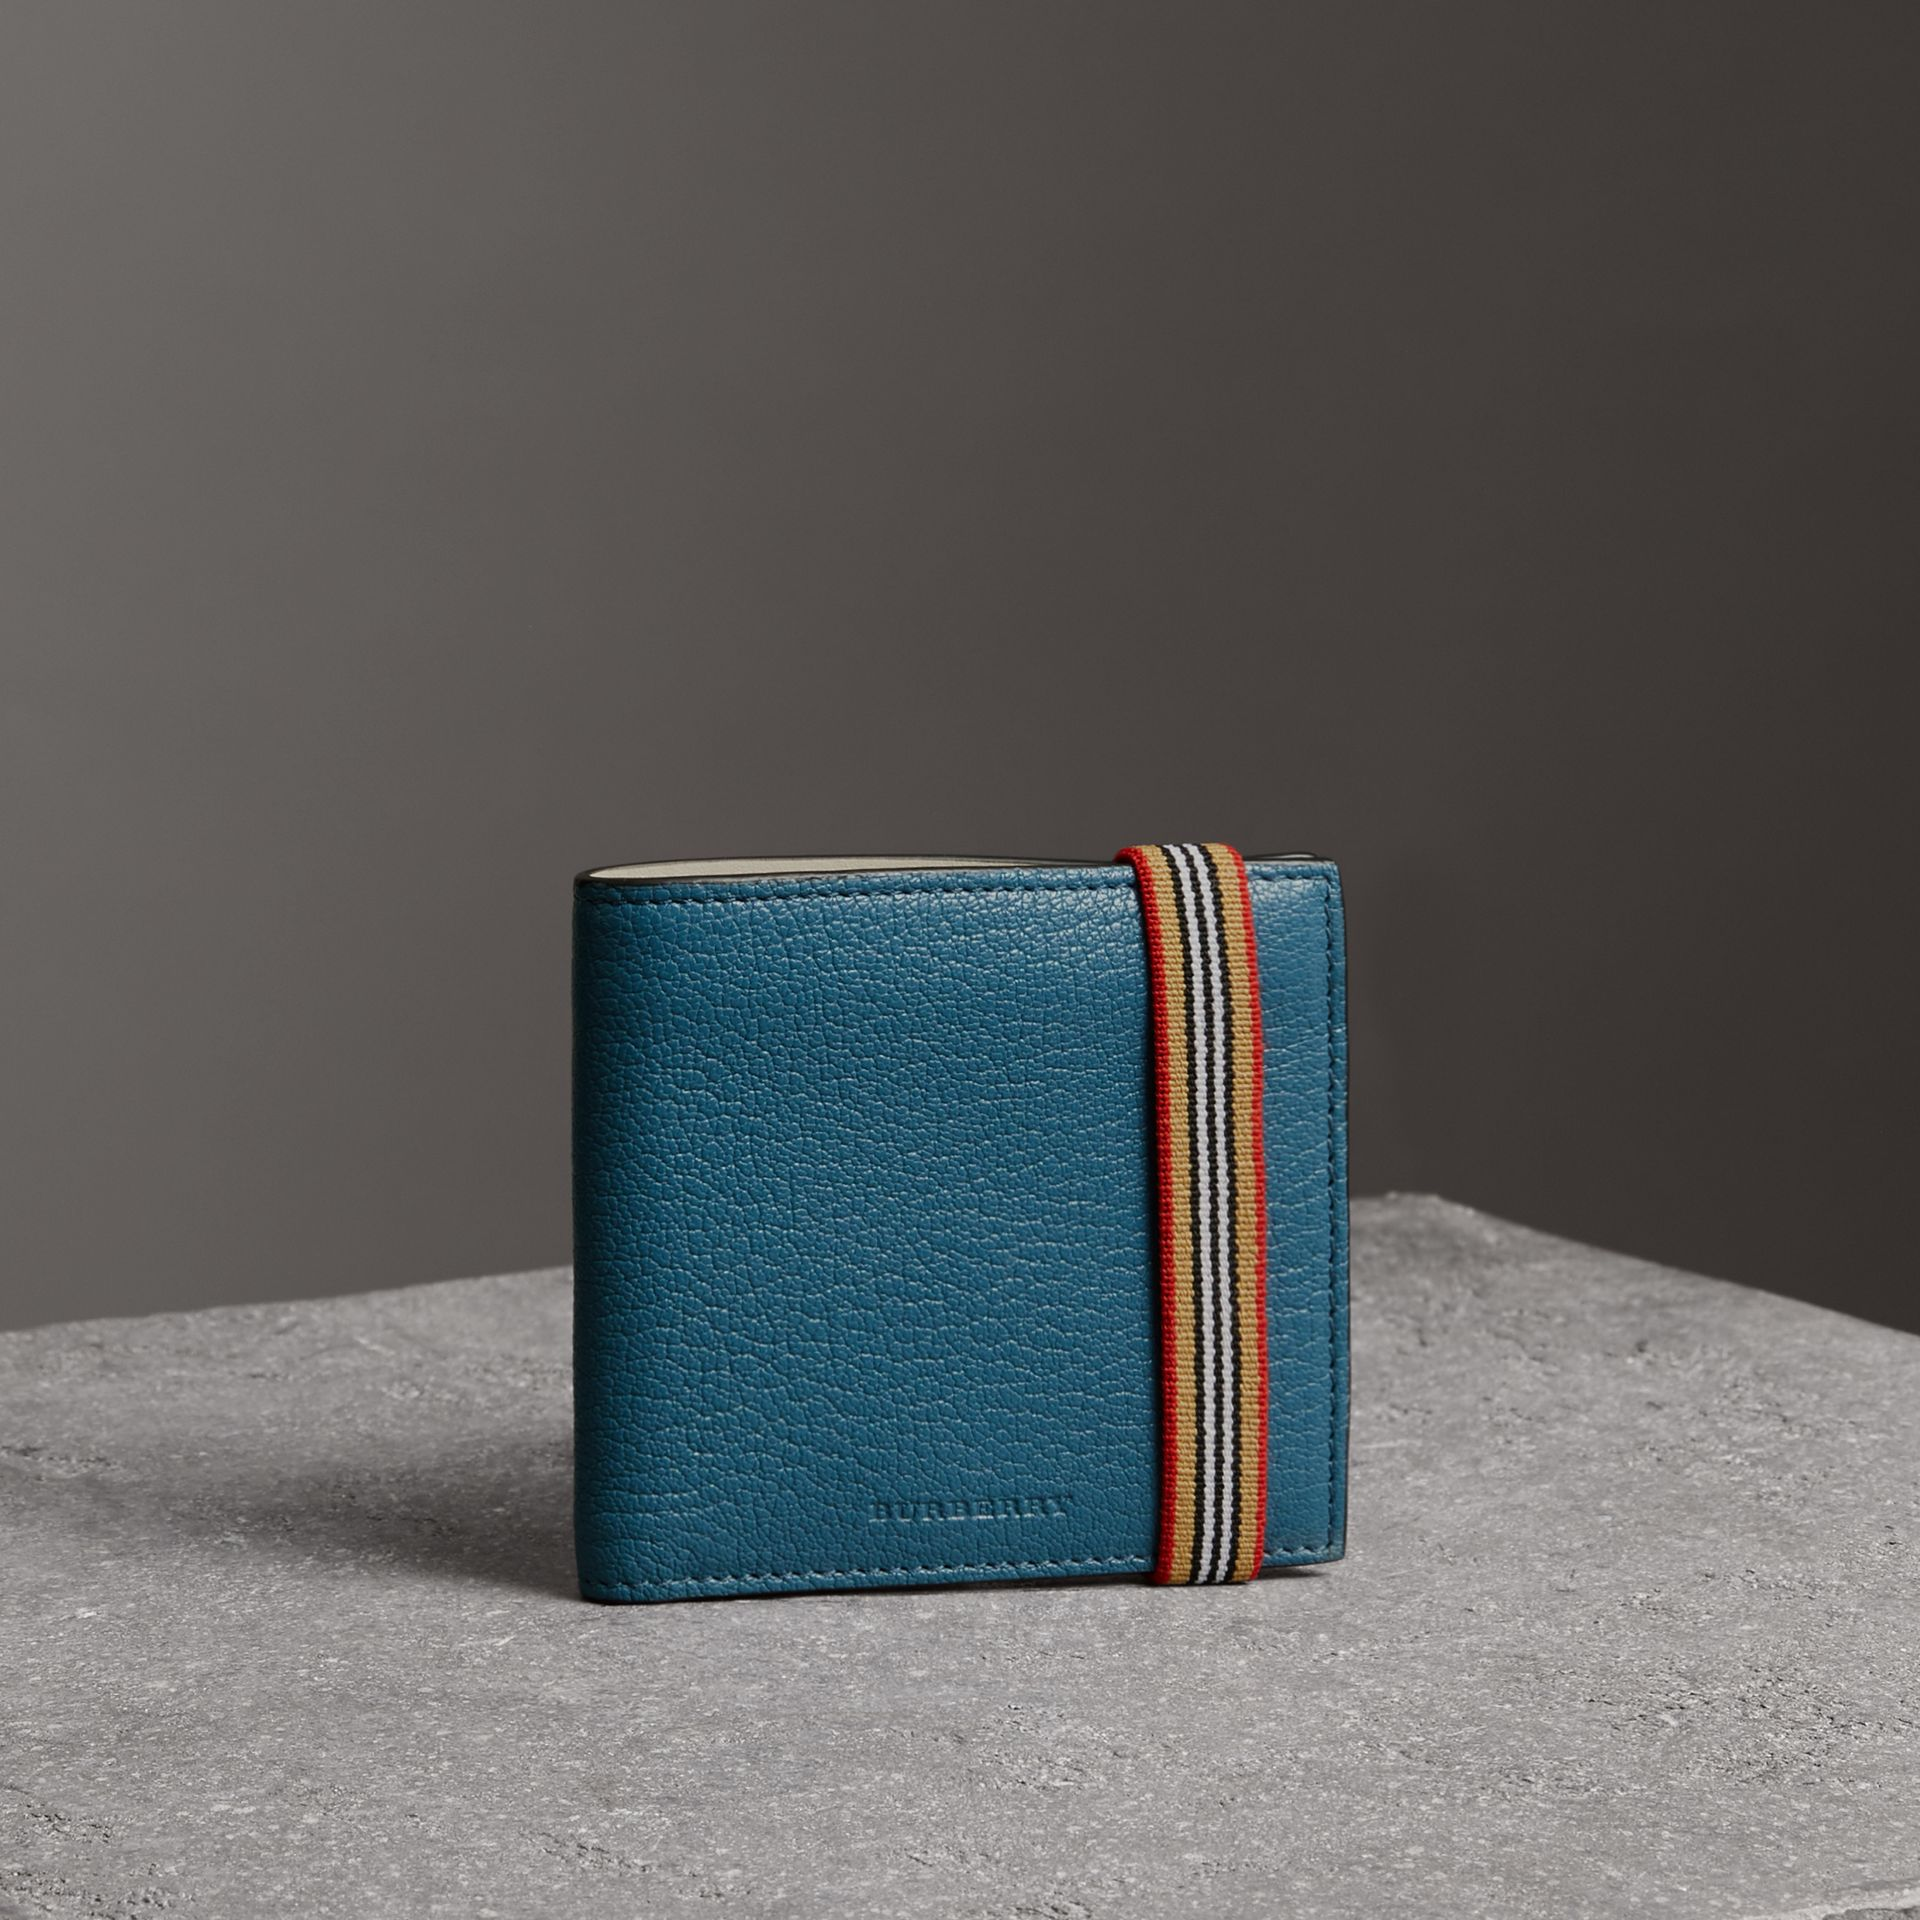 Heritage Stripe Leather International Bifold Wallet in Peacock Blue - Men | Burberry - gallery image 0